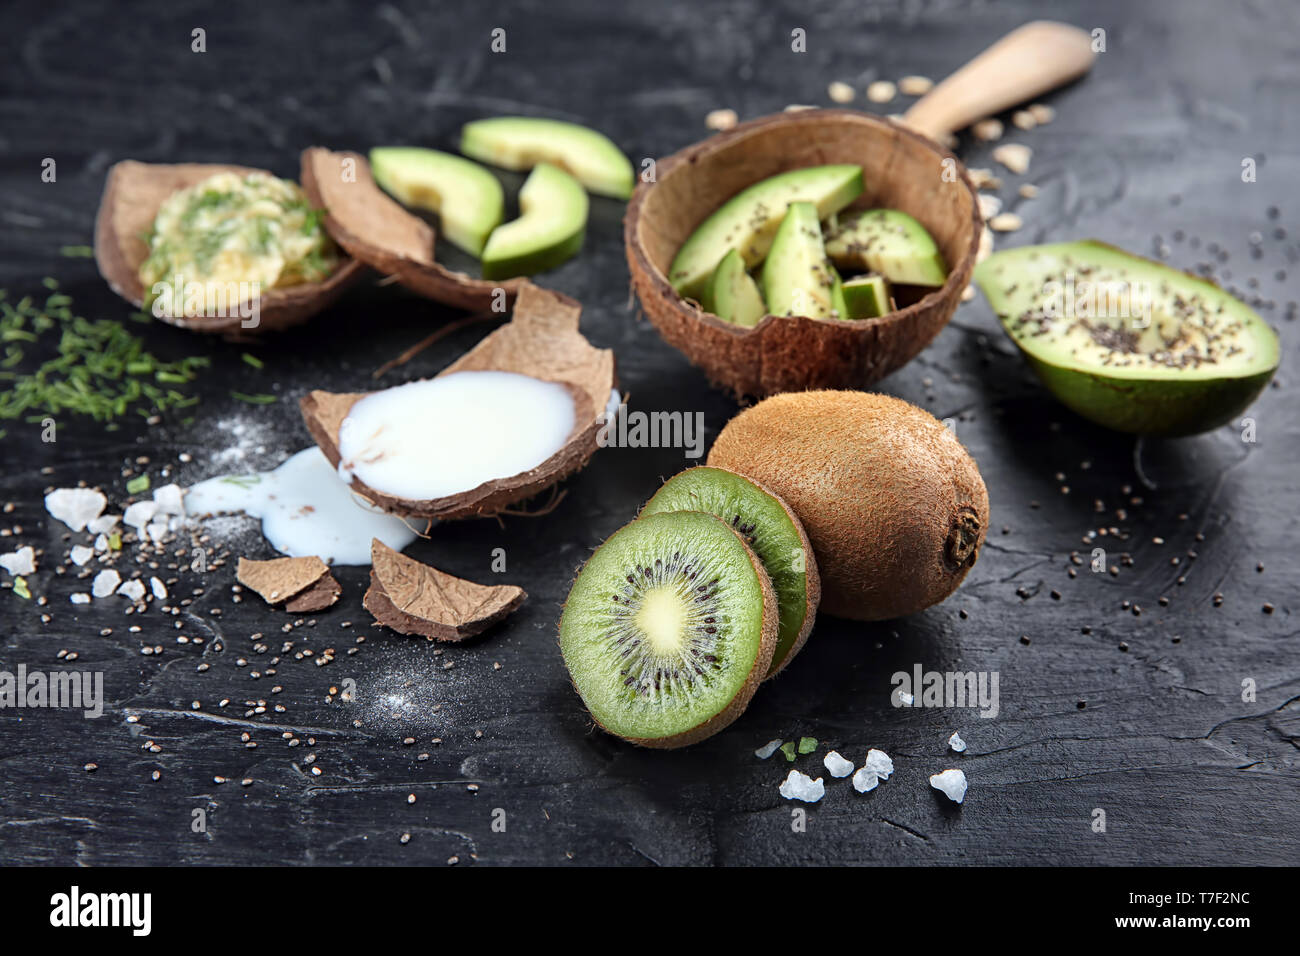 Natural ingredients for homemade cosmetics on black textured